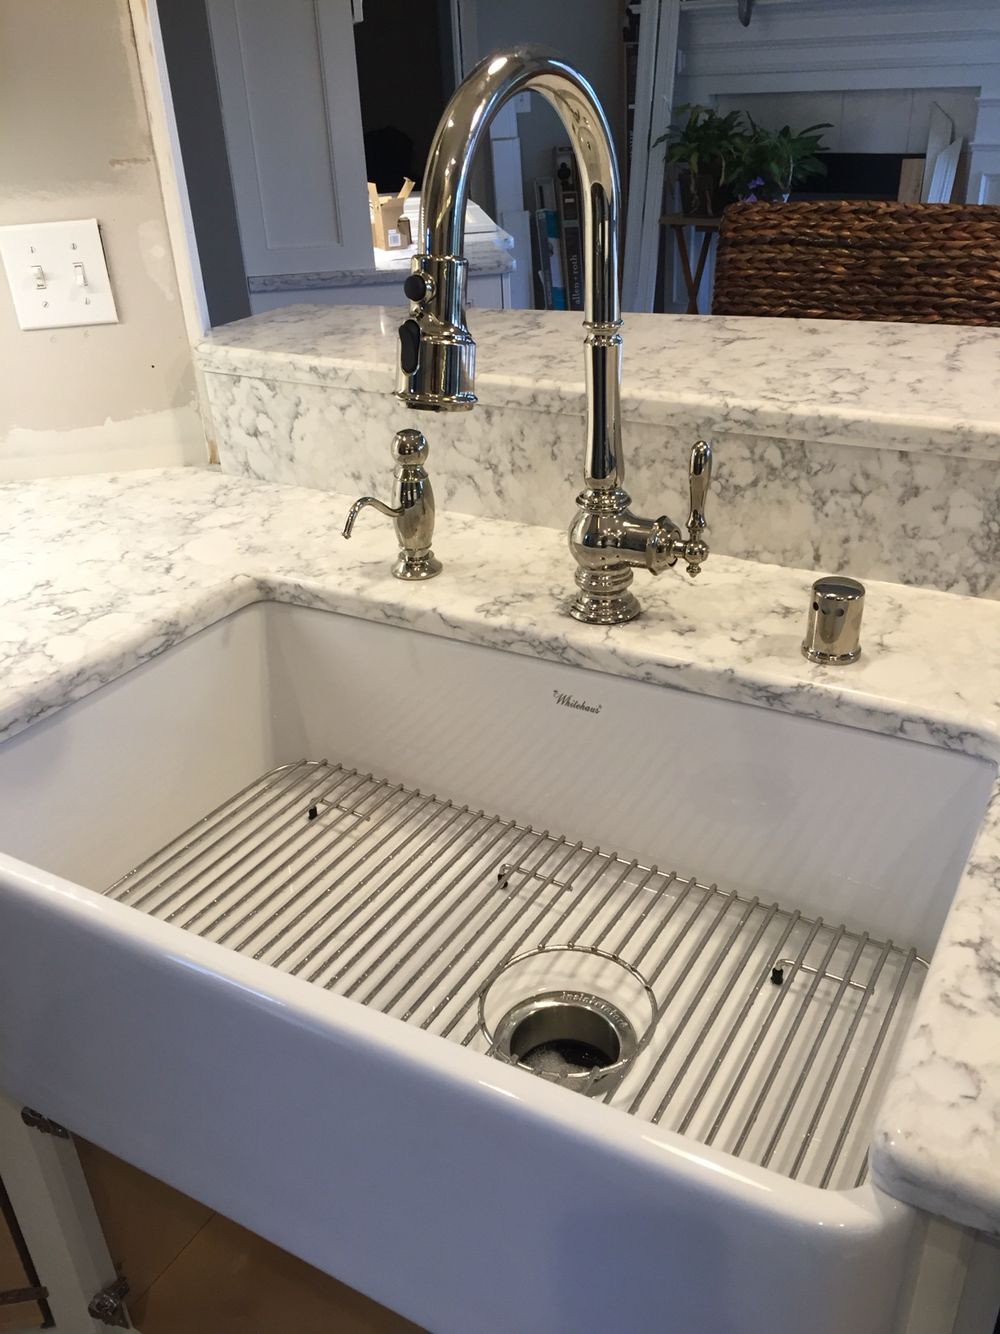 Kohler Artifacts Faucet w/ Whitehaus Farmhouse Sink | Mom & Aunt ...